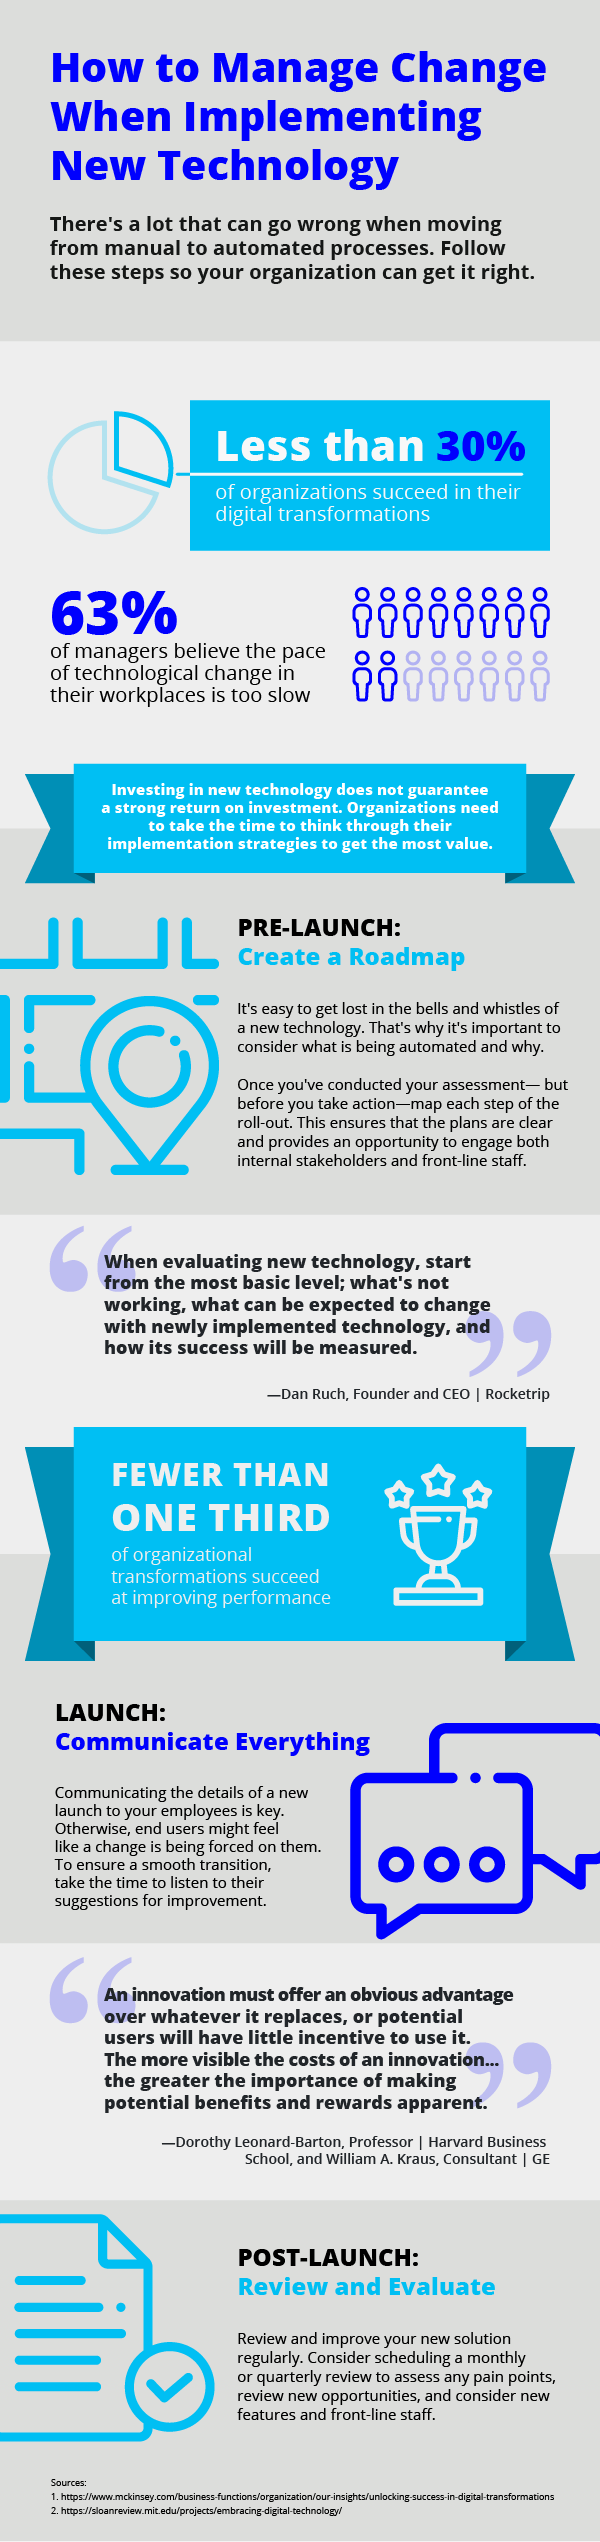 EPICOR-TSF-Infographic-Change-implementing-Technology-ENS-1019.png